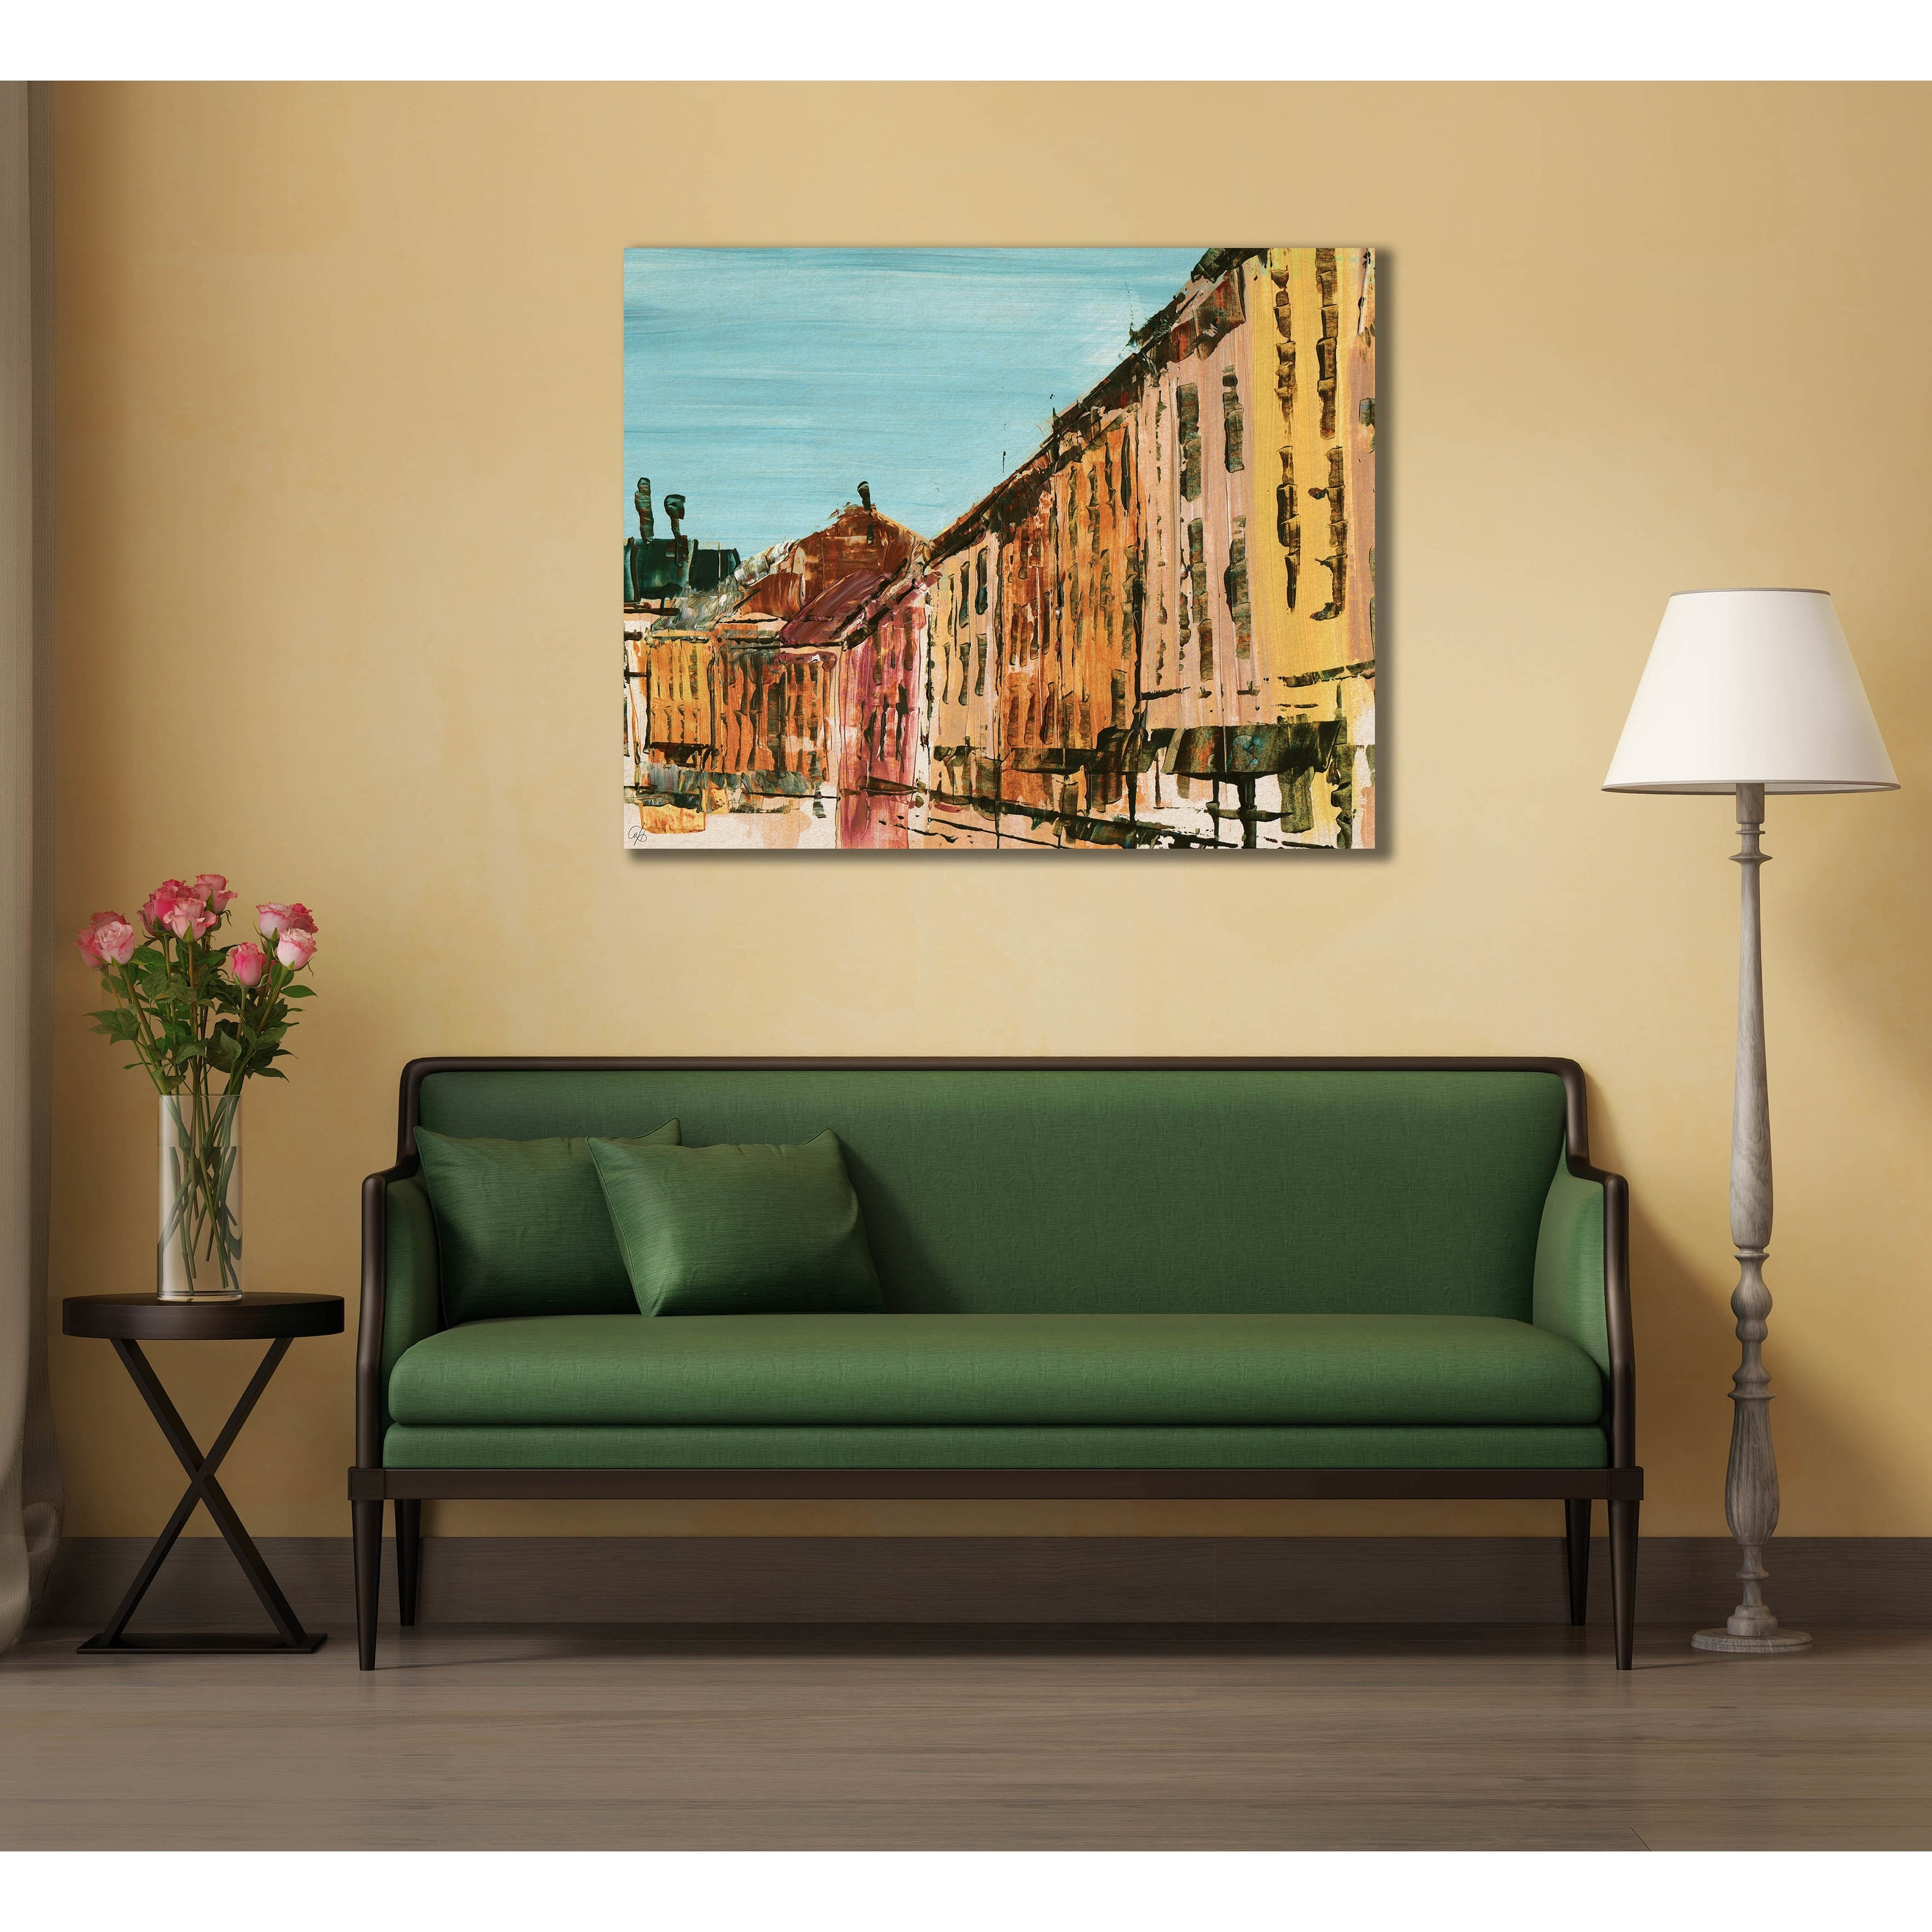 Quaint Streets Of Montreal Wall Art Canvas Print – Free Shipping With Regard To 2017 Montreal Canvas Wall Art (Gallery 10 of 15)